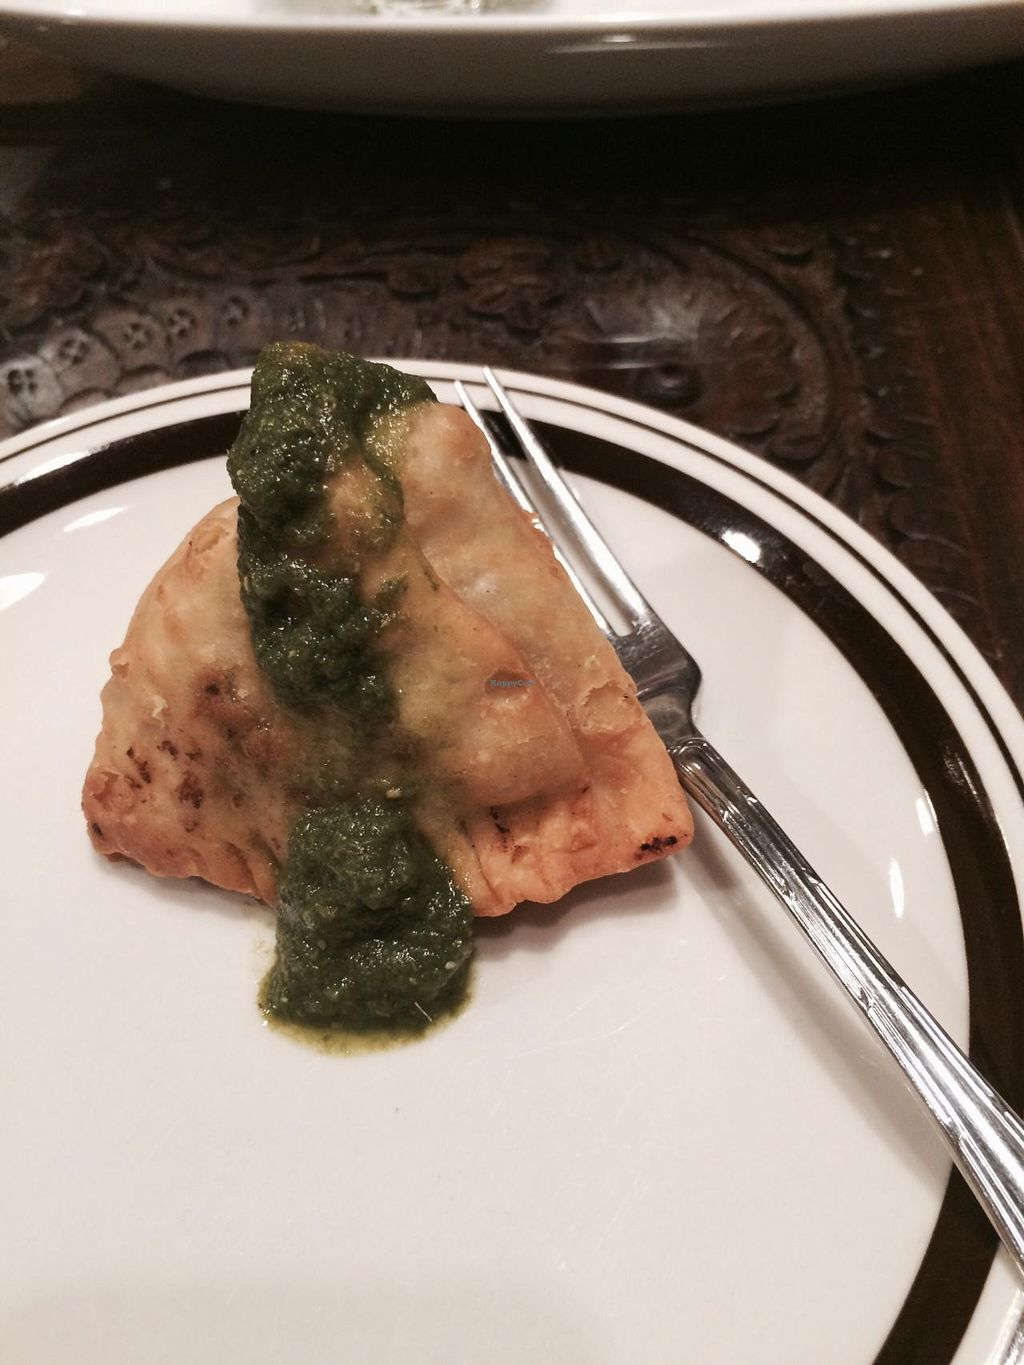 """Photo of Annam Restaurant  by <a href=""""/members/profile/Kristy01"""">Kristy01</a> <br/>Samosa! Yum! <br/> April 26, 2015  - <a href='/contact/abuse/image/48538/100412'>Report</a>"""